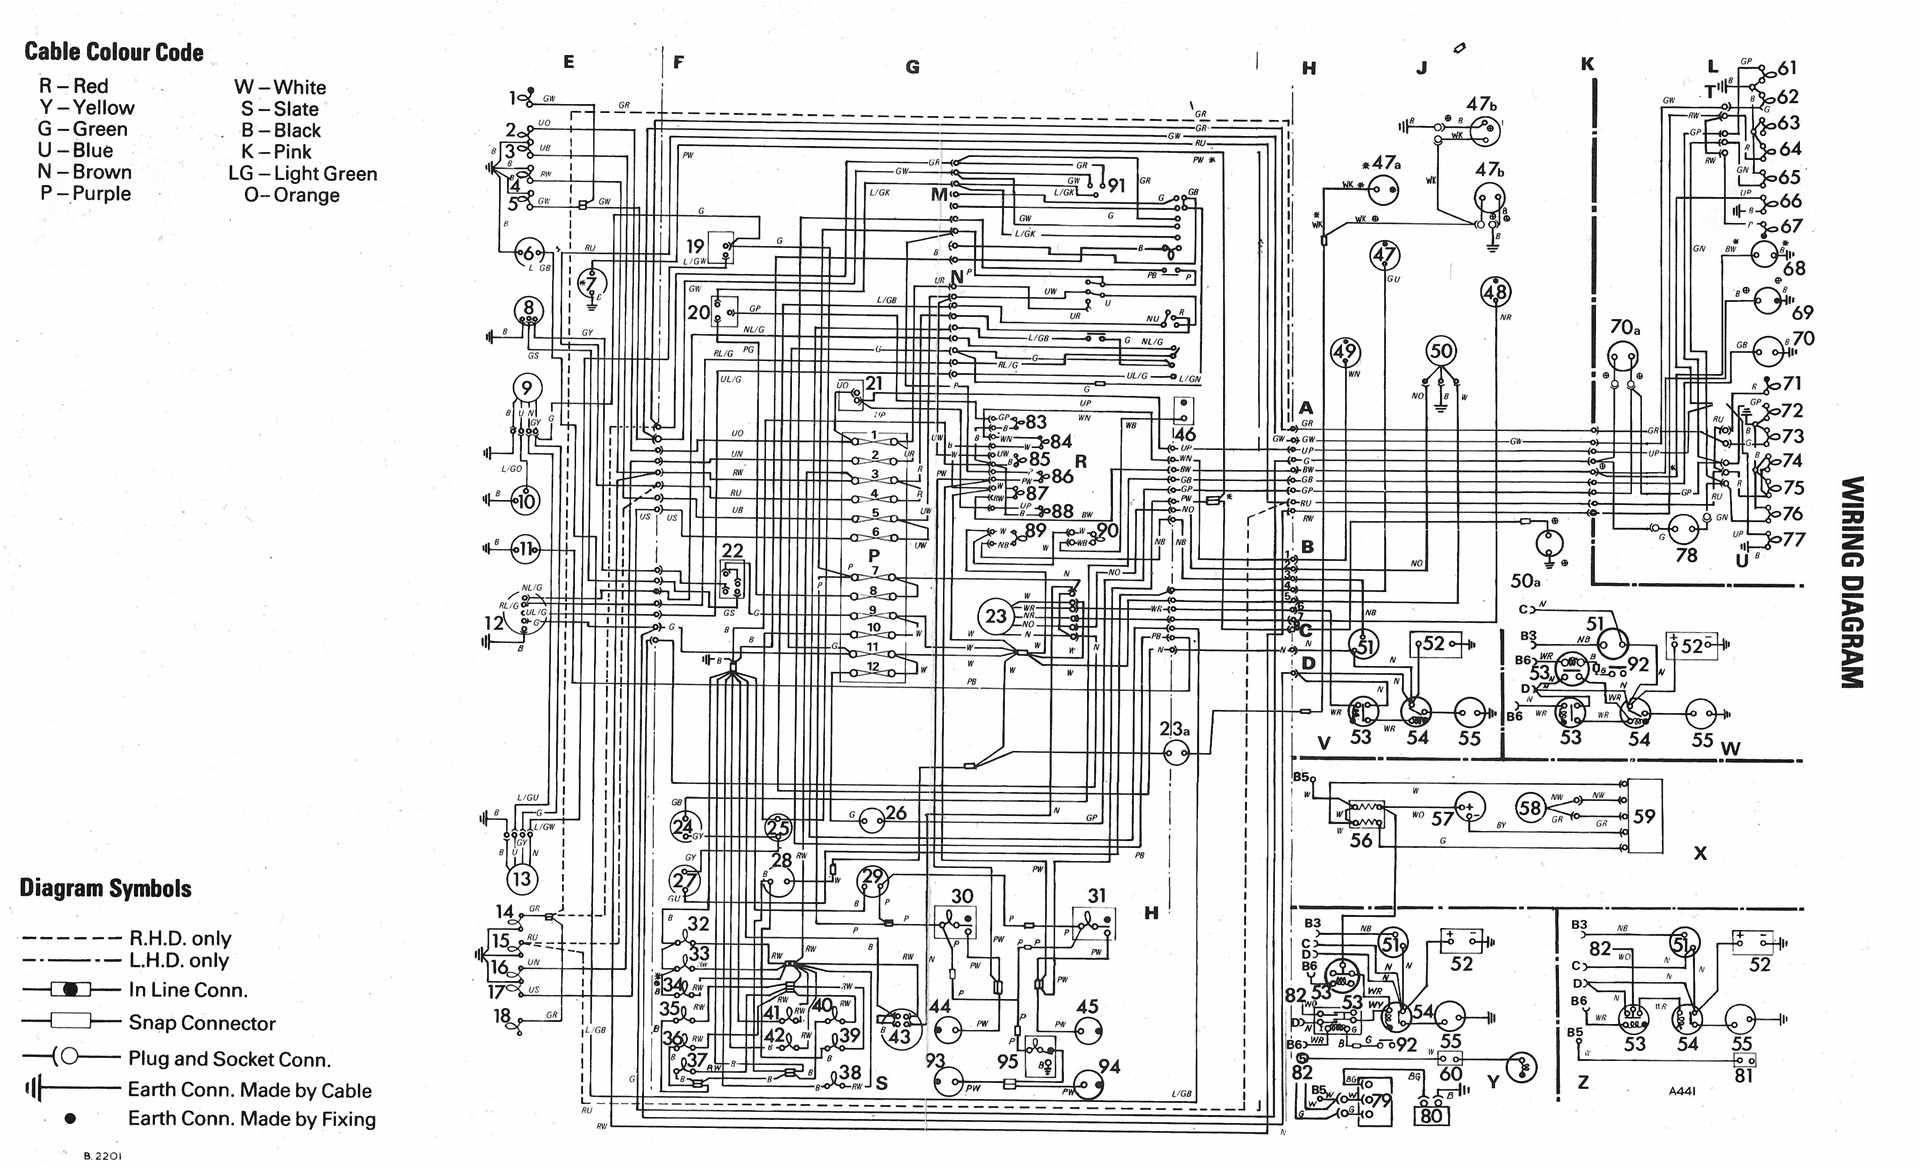 [DIAGRAM_5UK]  Volkswagen Rabbit Wiring Scmatic | Online Wiring Diagram | 1984 Vw Rabbit Diesel Wiring Schematic |  | Wiring Diagram